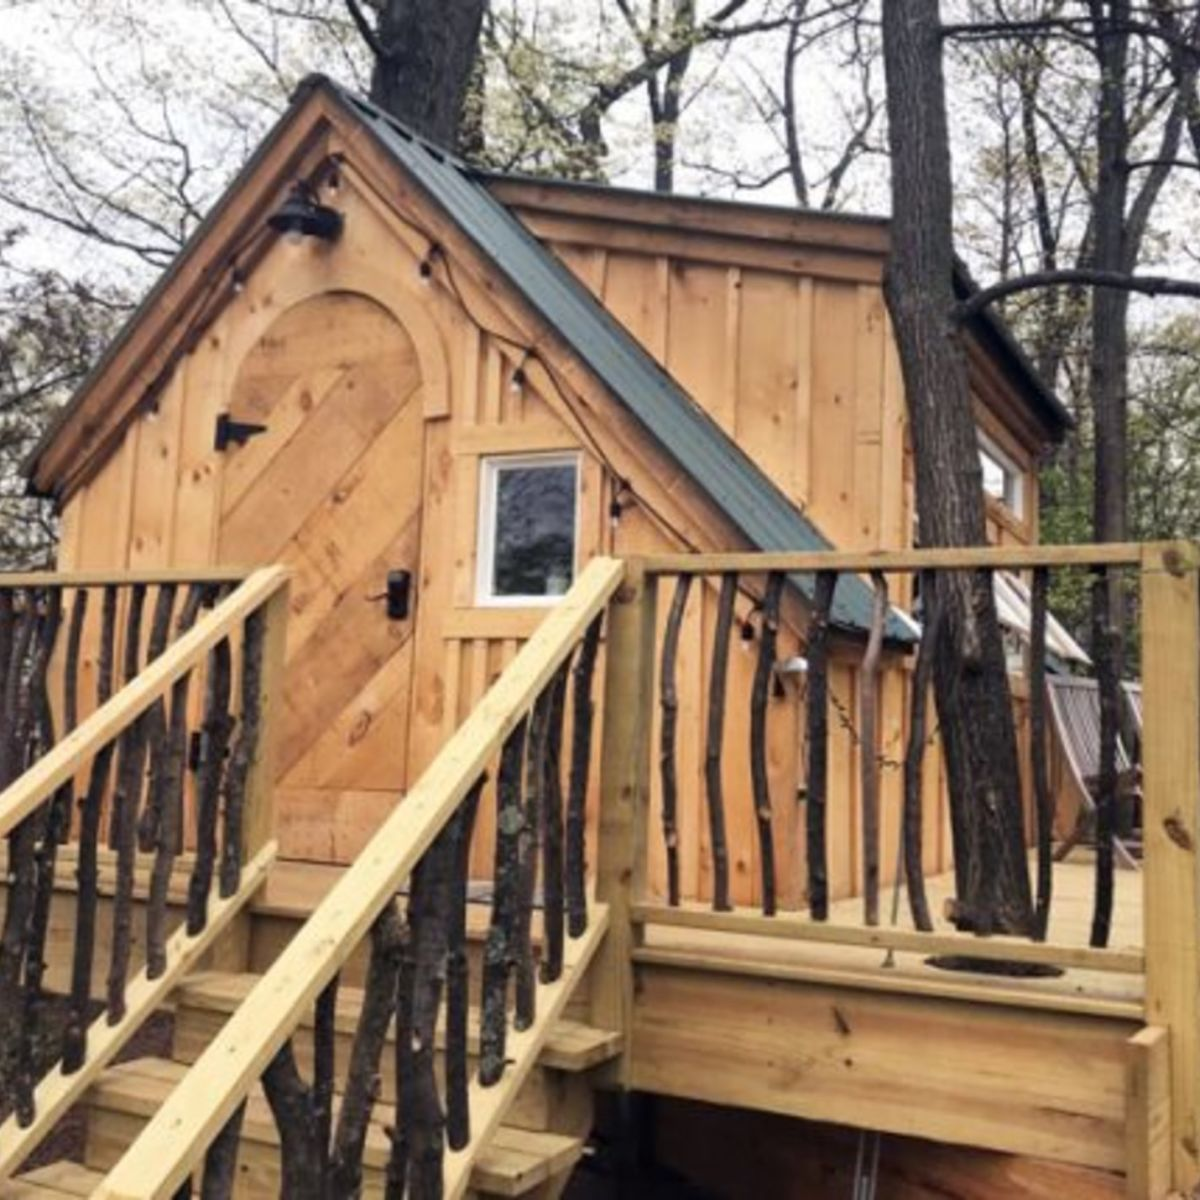 Houses For Rent Listings: Vermont Cabins, Cottages And Tiny Homes!